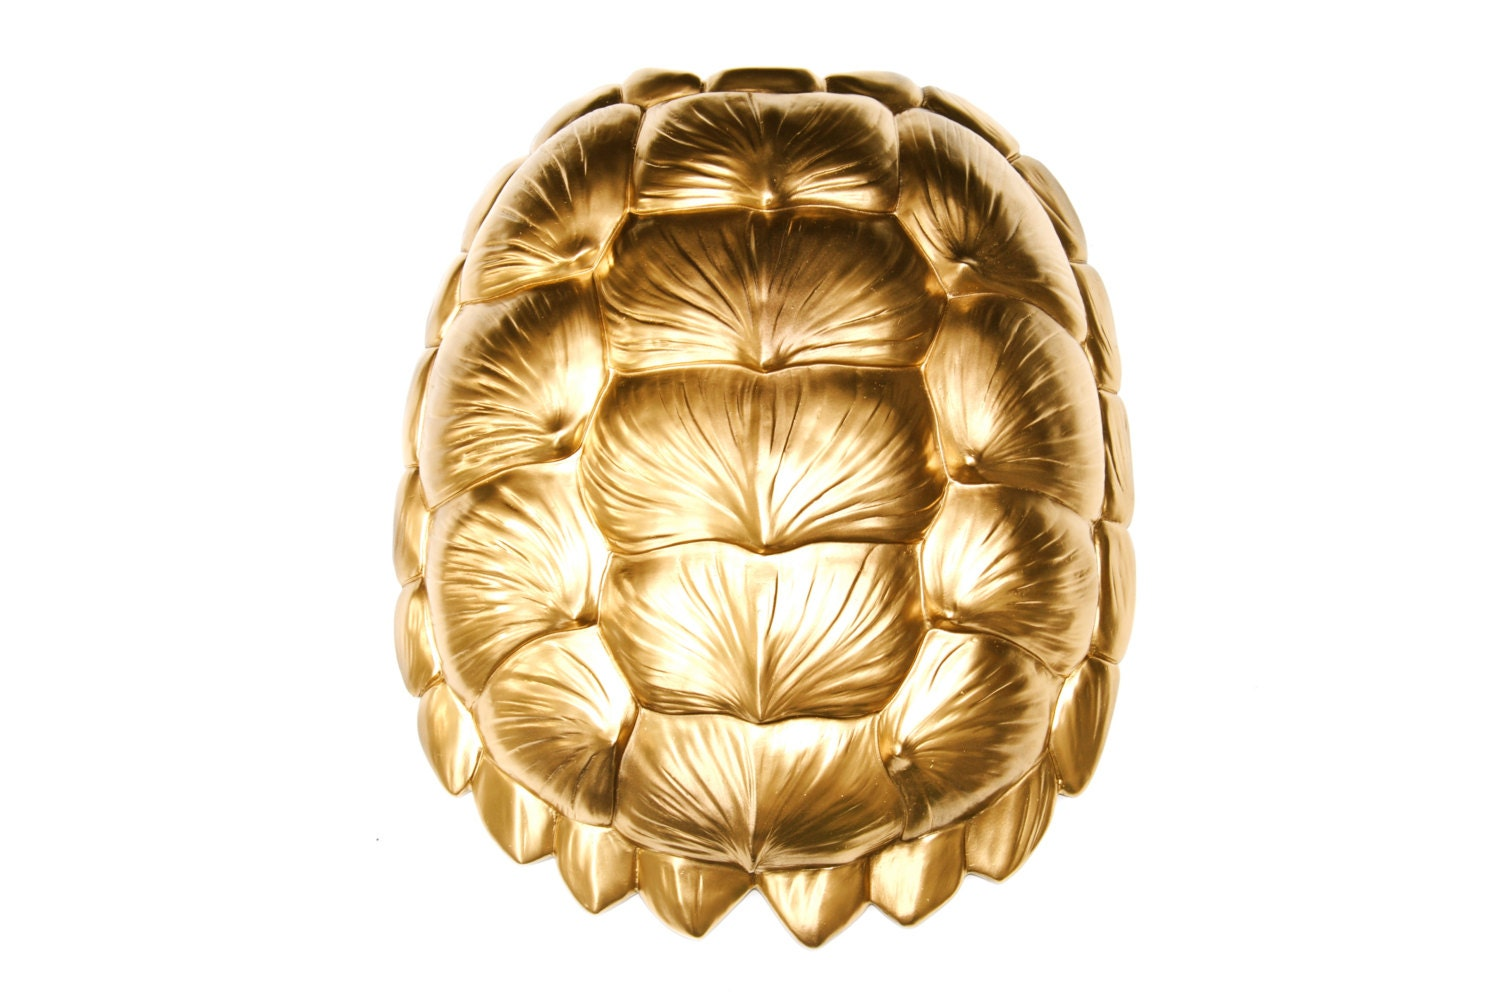 Turtle Shell Wall Decor The Bayou in Gold Large Faux Resin